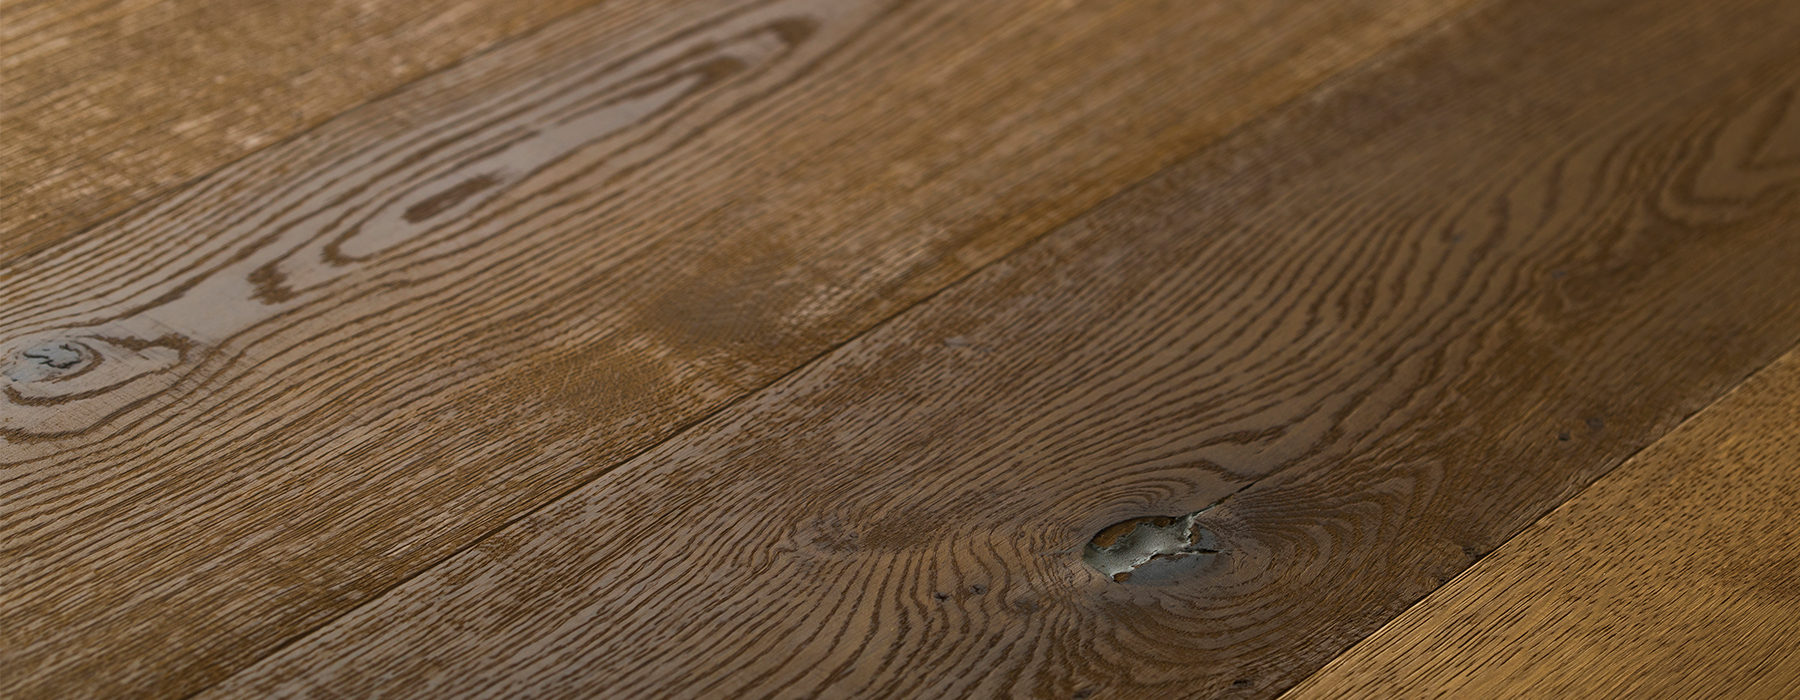 OAK ANTIROUGH BROWN